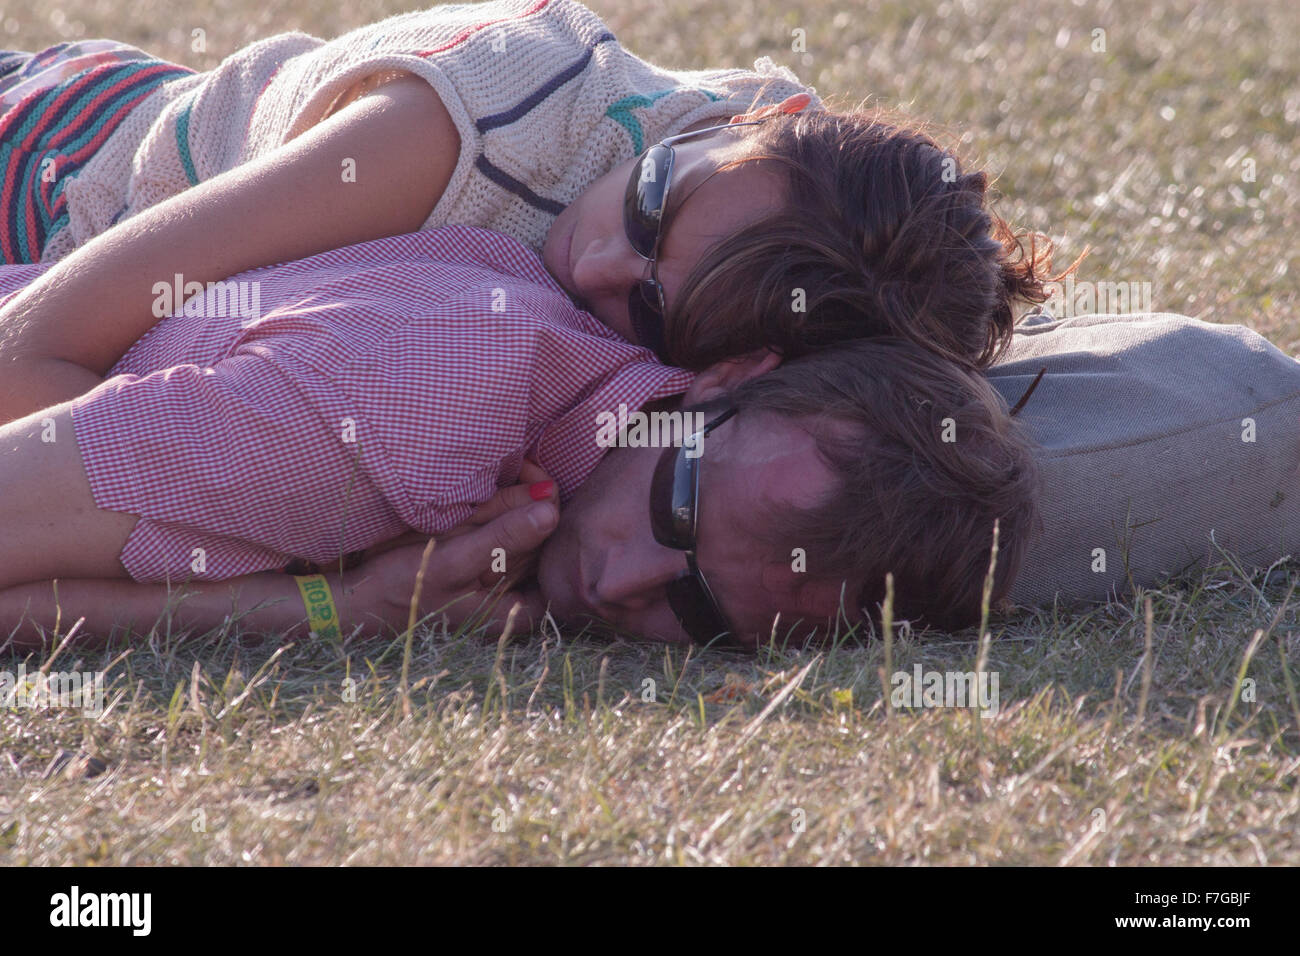 A couple take a nap at the Hop Farm music festival July 2009 - Stock Image